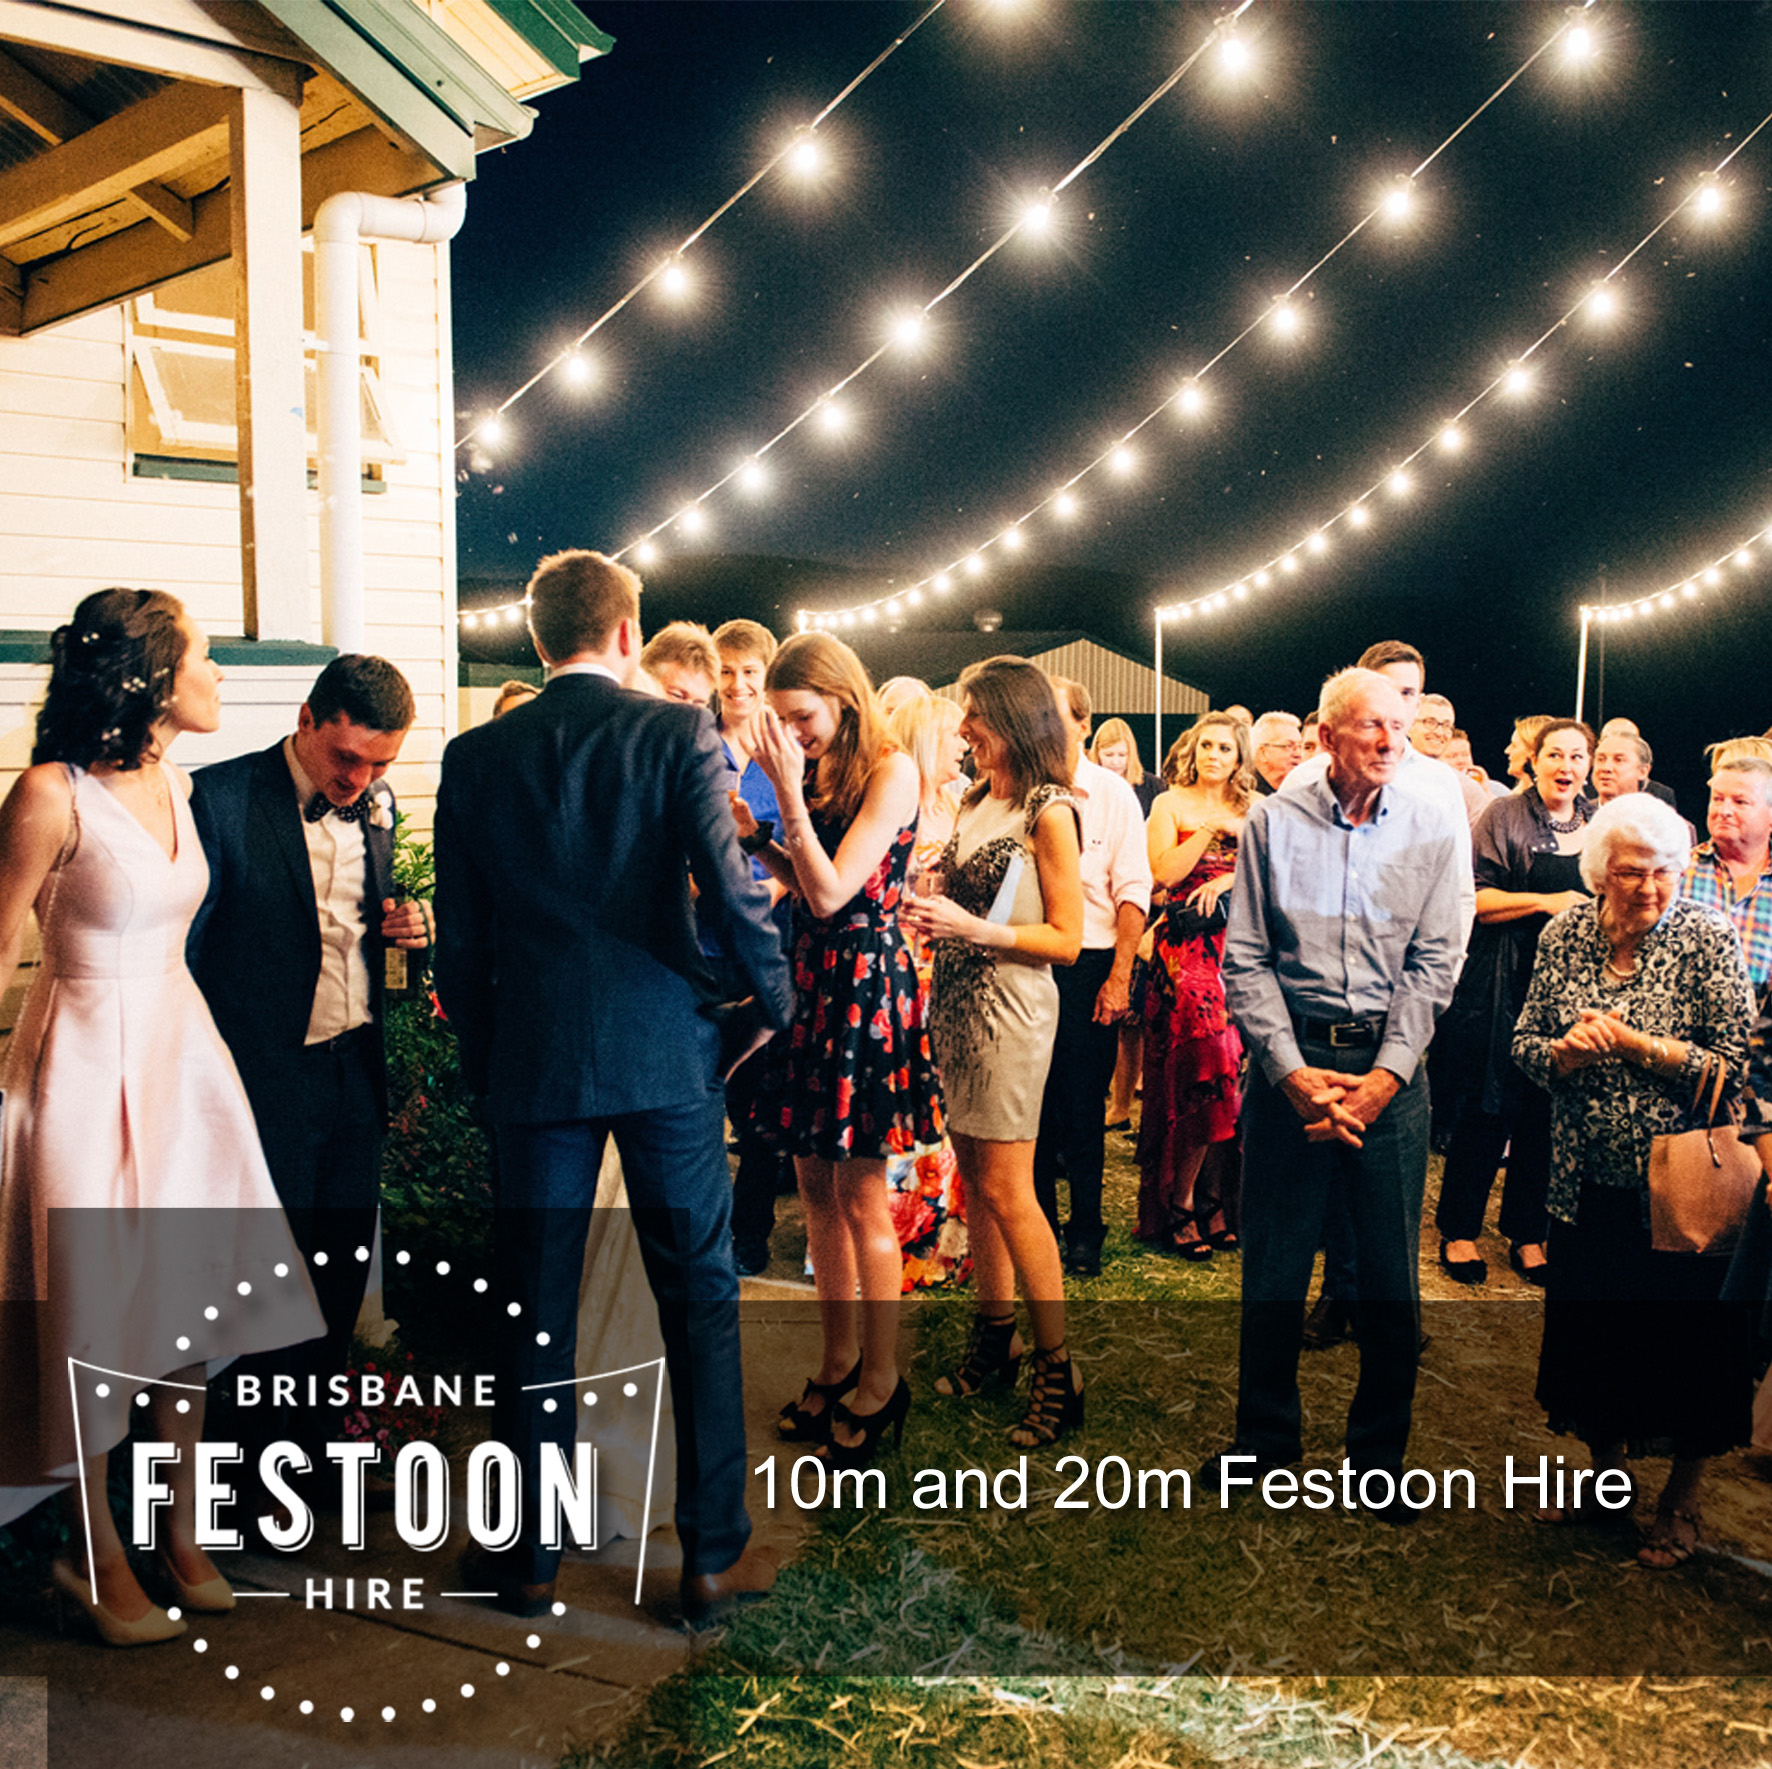 Brisbane Festoon Hire - 10m and 20m Festoon Hire 1.jpg